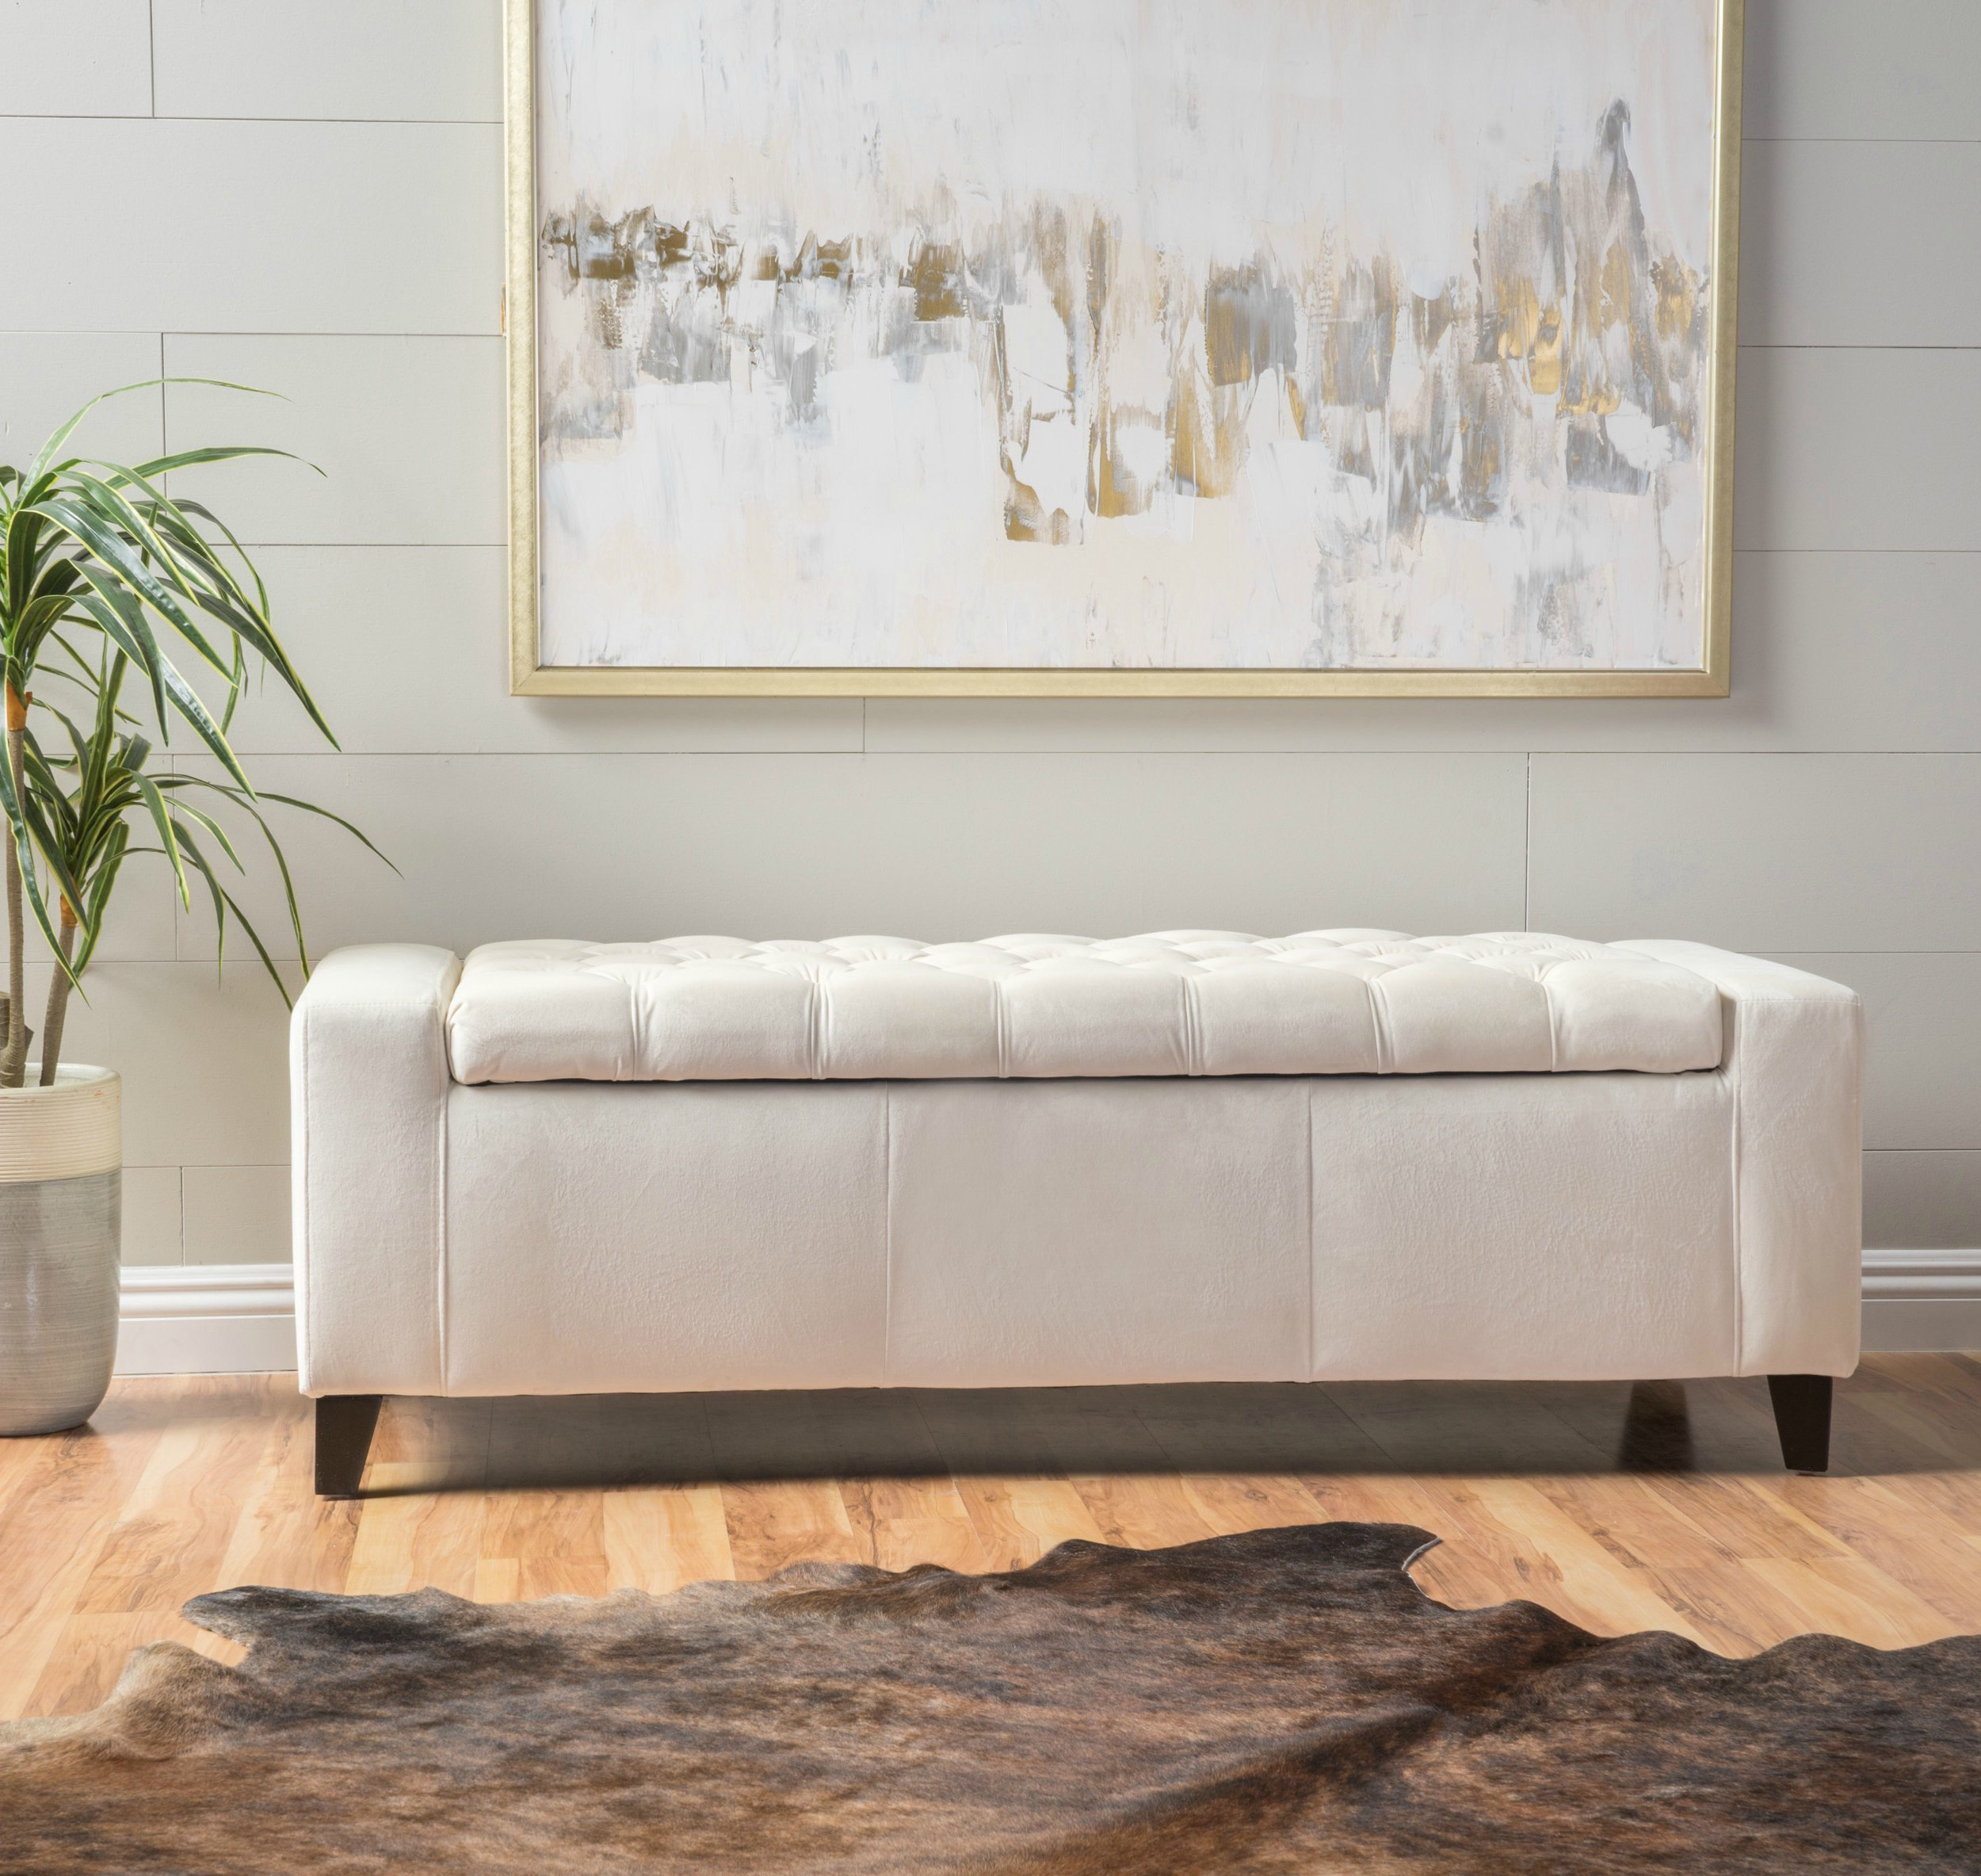 Eco friendly Storage Ottoman Bench Entryway Footstool Button Tufted Ivory